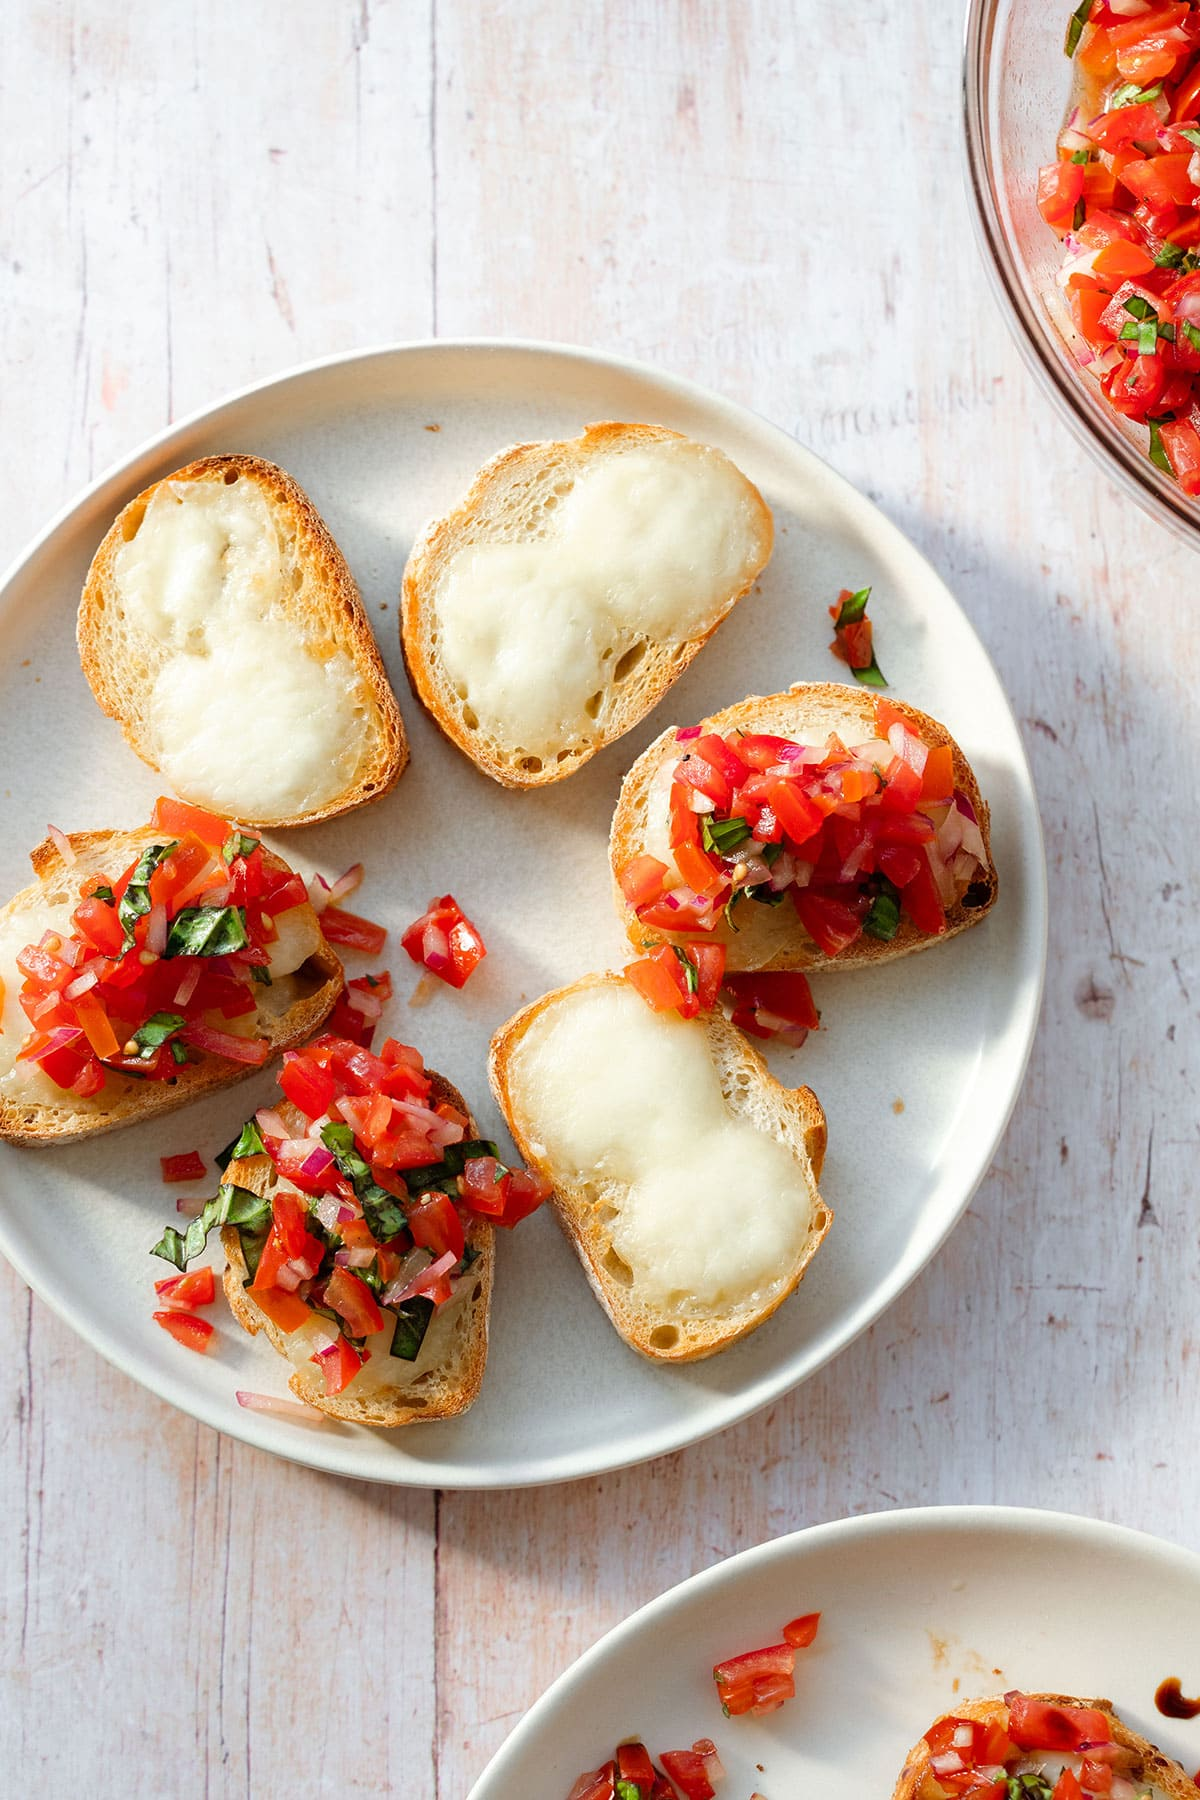 A beige plate with sliced toasted baguette with melted mozzarella cheese and tomatoes.